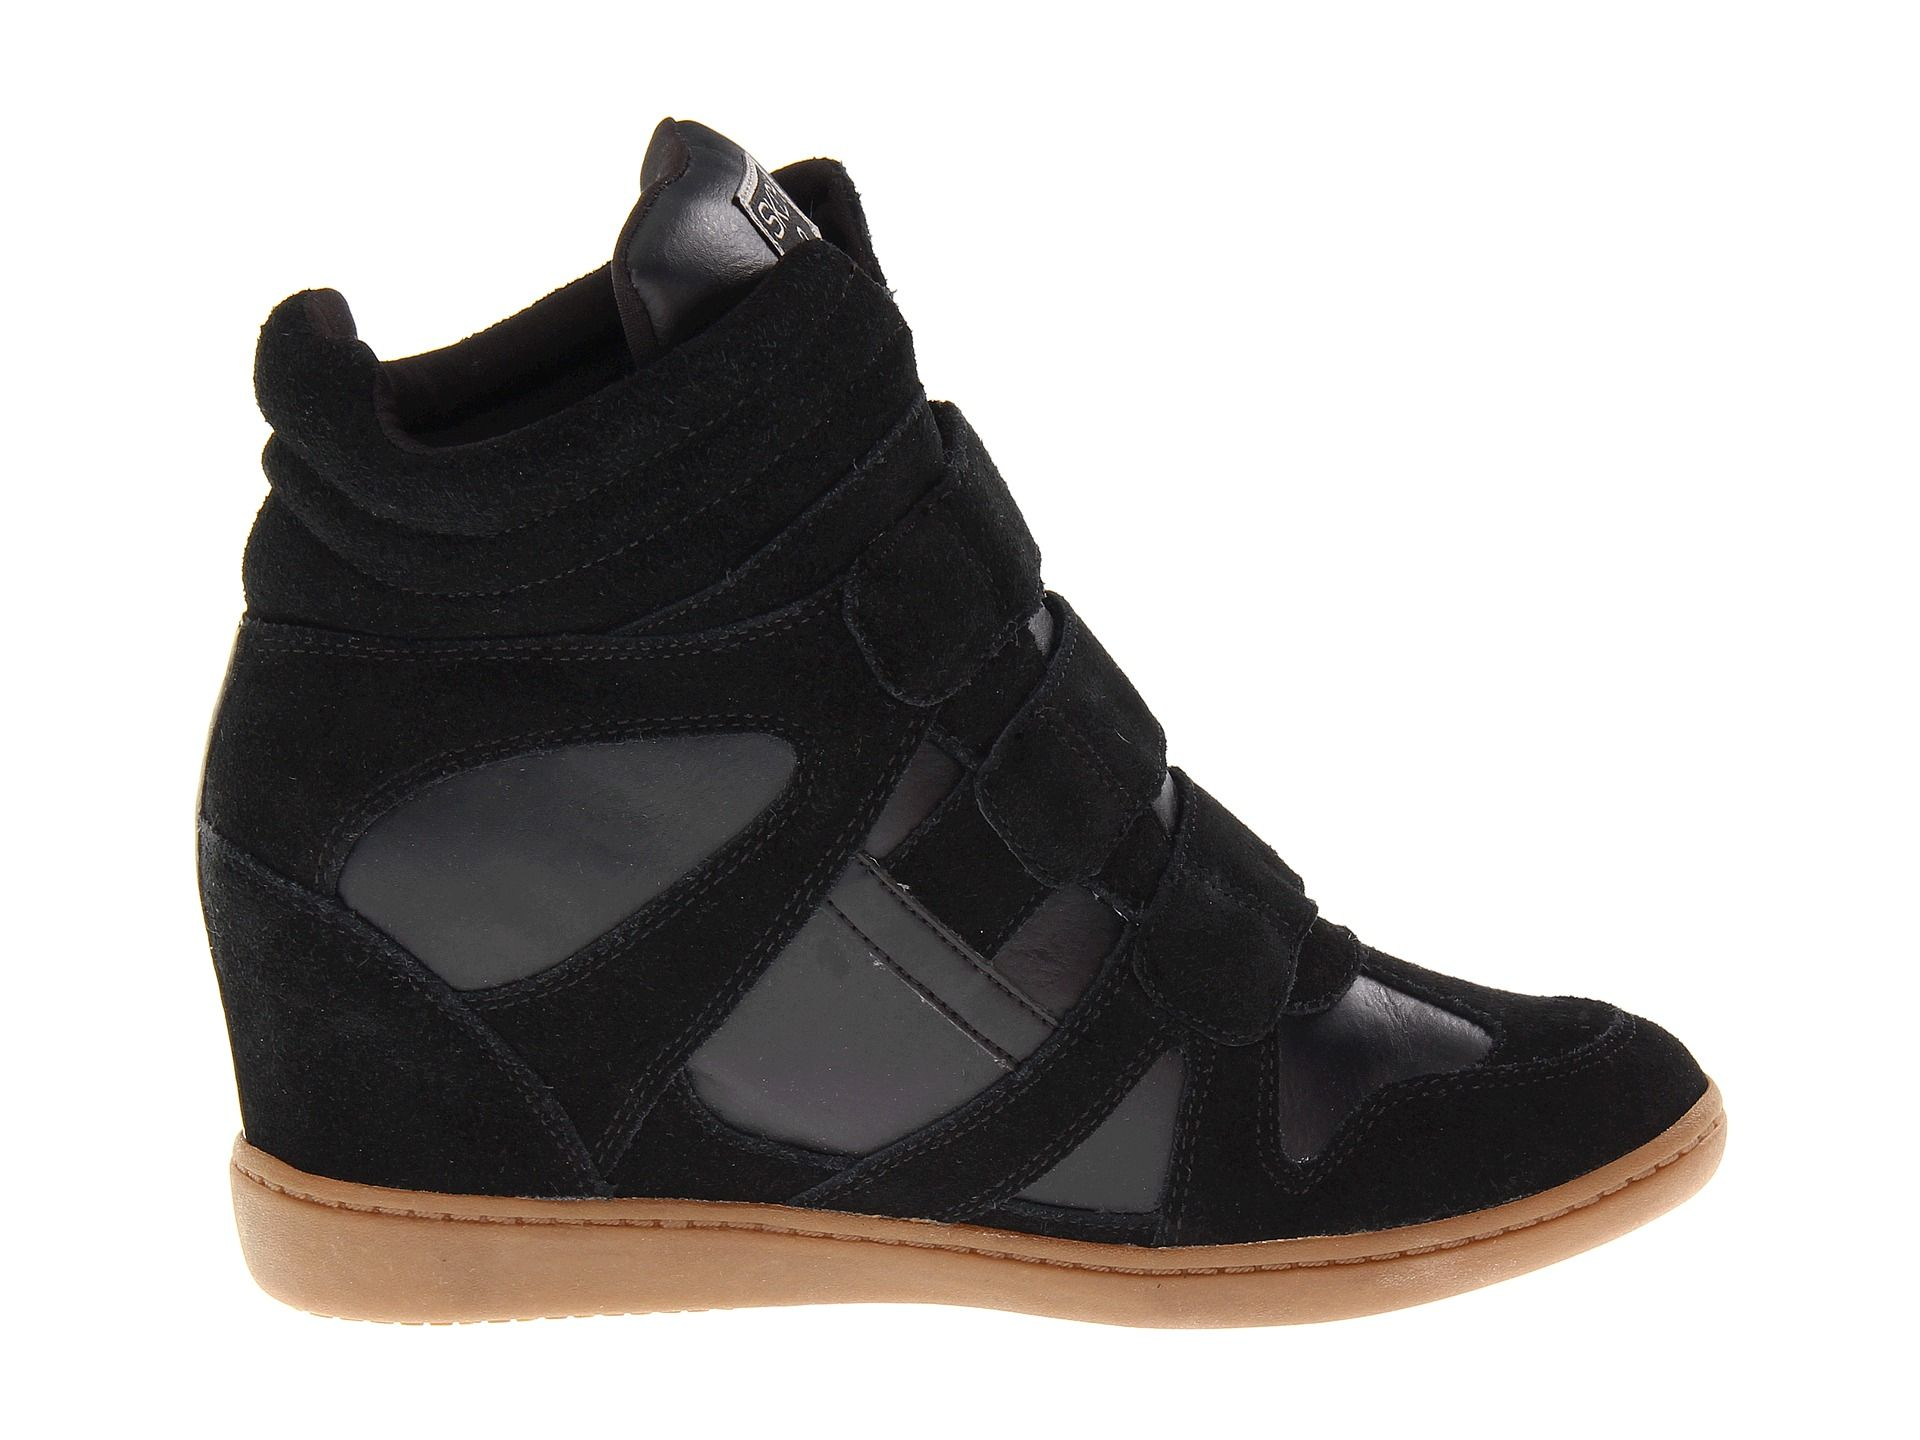 Skechers SKCH Plus 3 High Top (Black) Footwear on